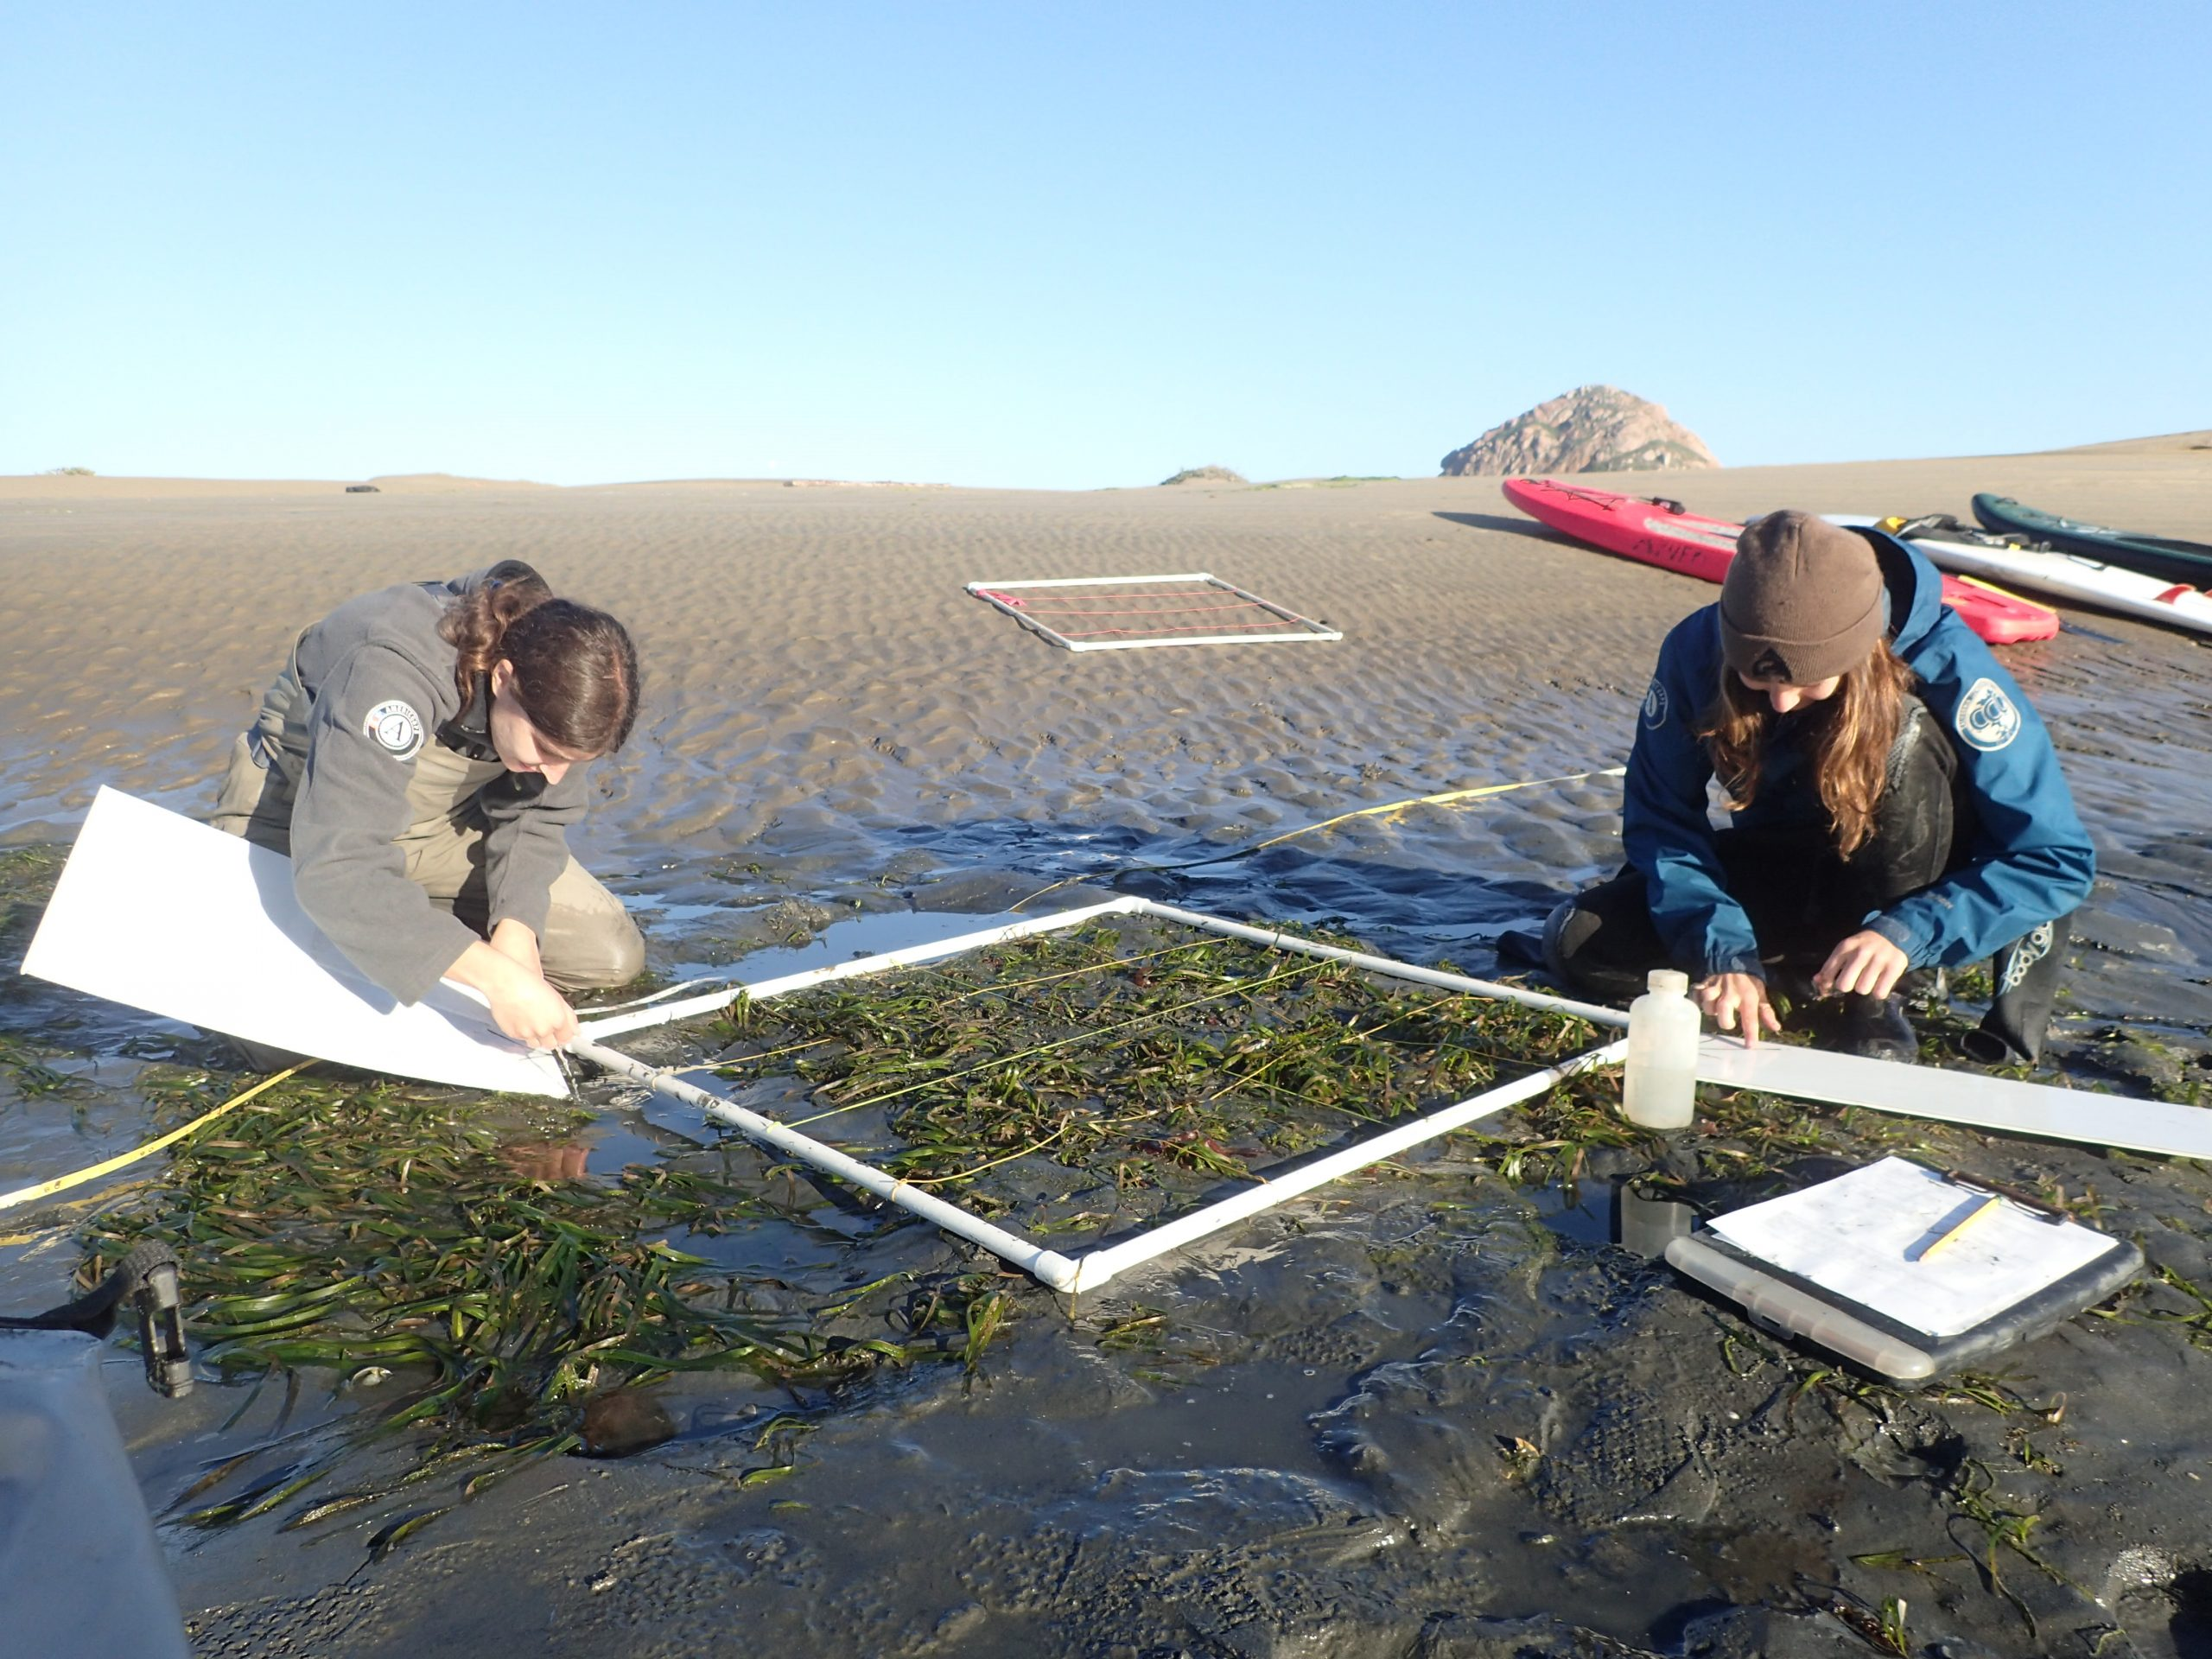 Does Morro Bay support healthy eelgrass beds?